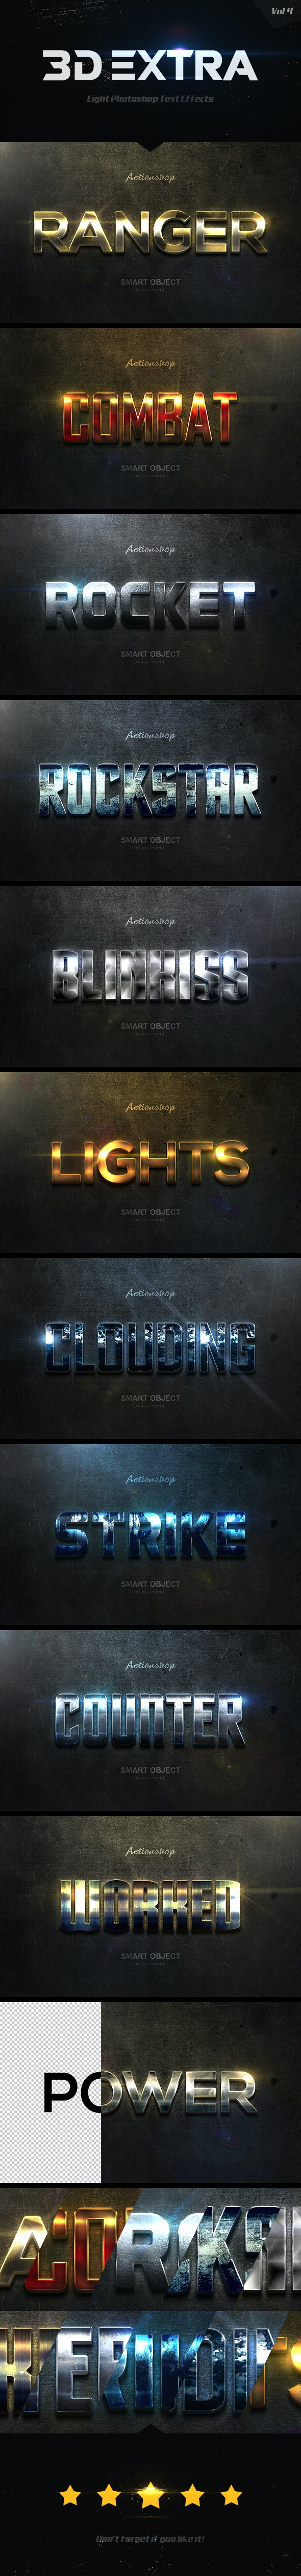 New 3D Extra Light Text Effects Vol.4 - Text Effects Styles